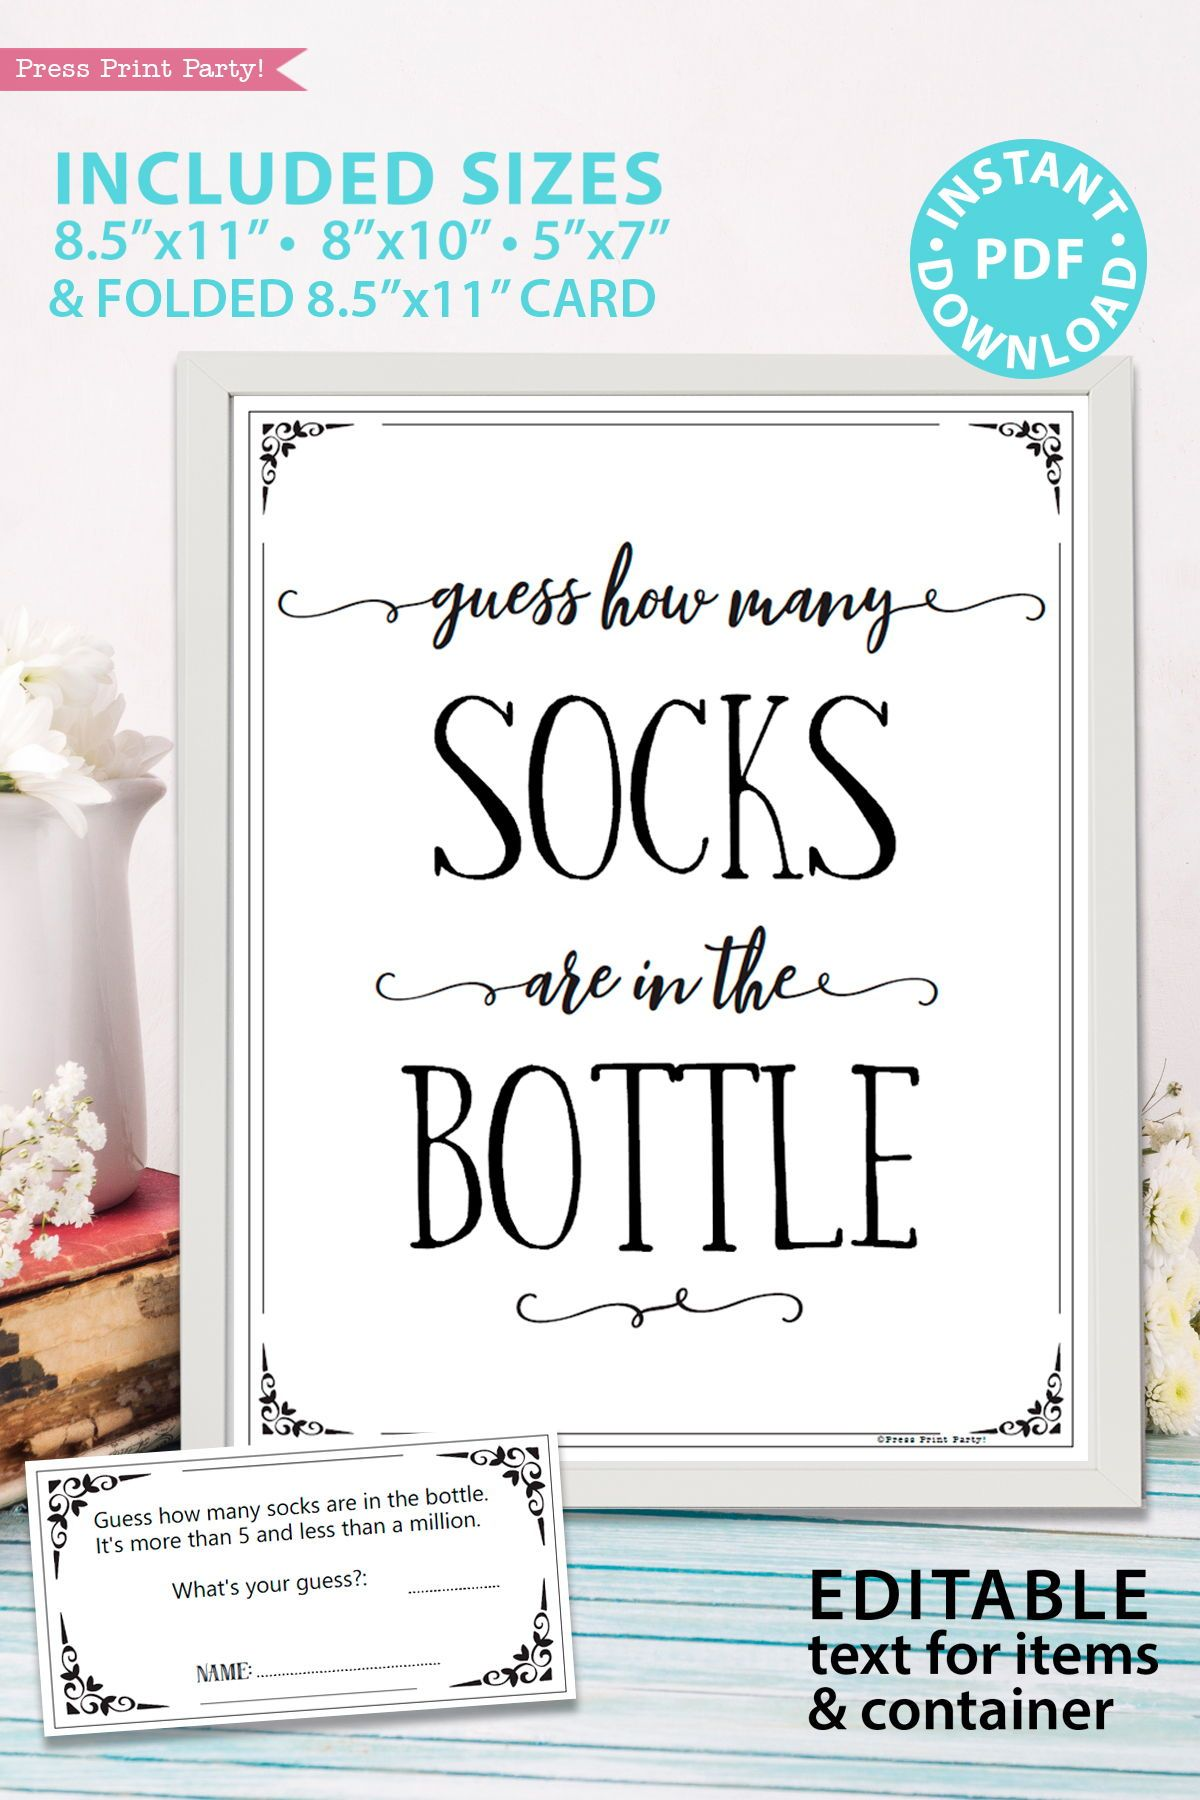 Baby Shower Guess How Many Socks In The Jar Template : shower, guess, socks, template, Guess, Printable, (Rustic, Style), Press, Print, Party!, Signs,, Shower, Games,, Games